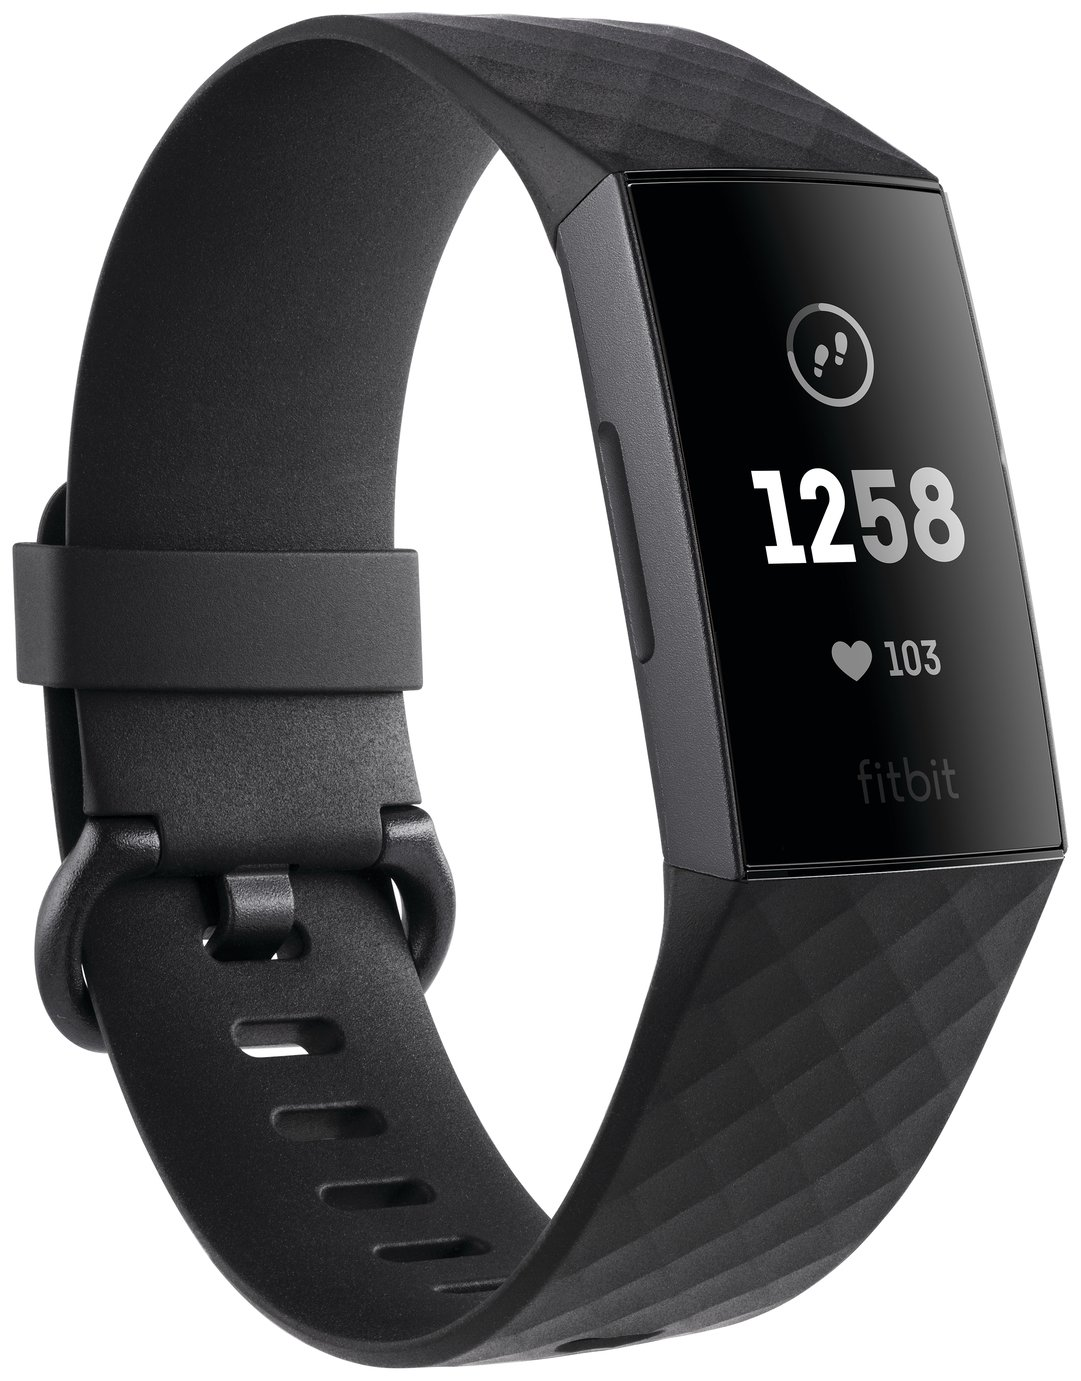 Fitbit Charge 3 Fitness Tracker - Graphite Black from Fitbit